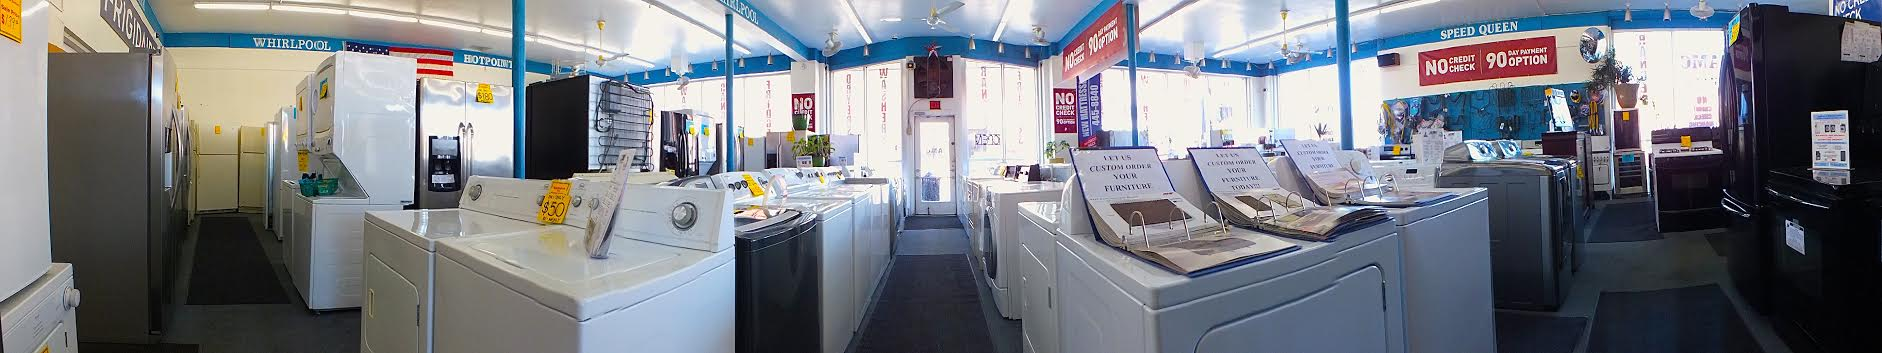 a great place to buy rent-to-own furniture and appliances